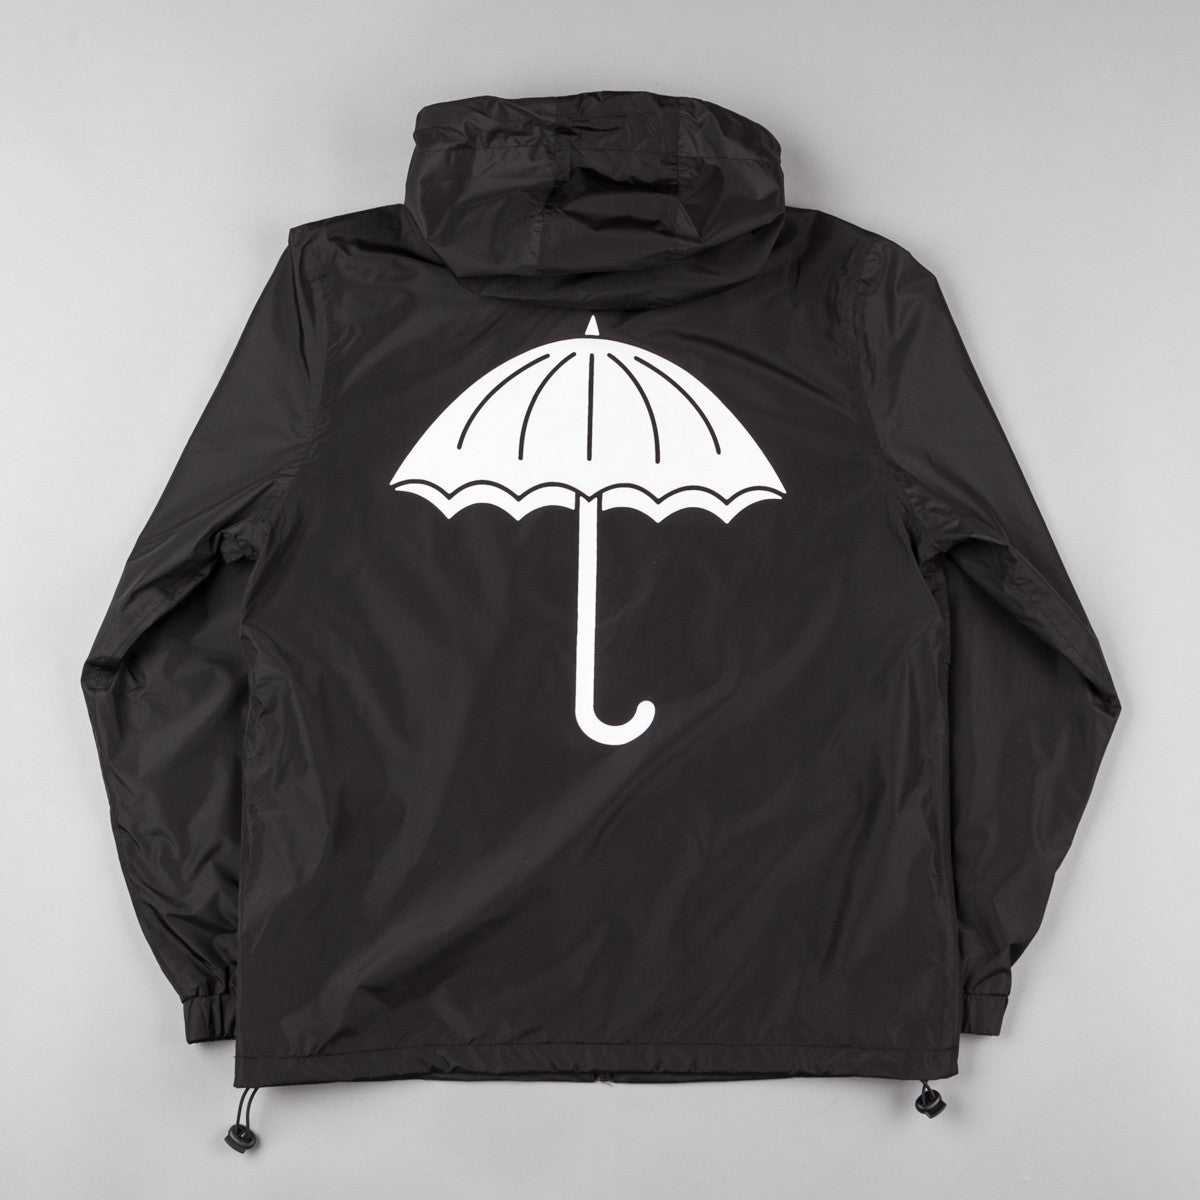 Helas Rain Jacket - Black